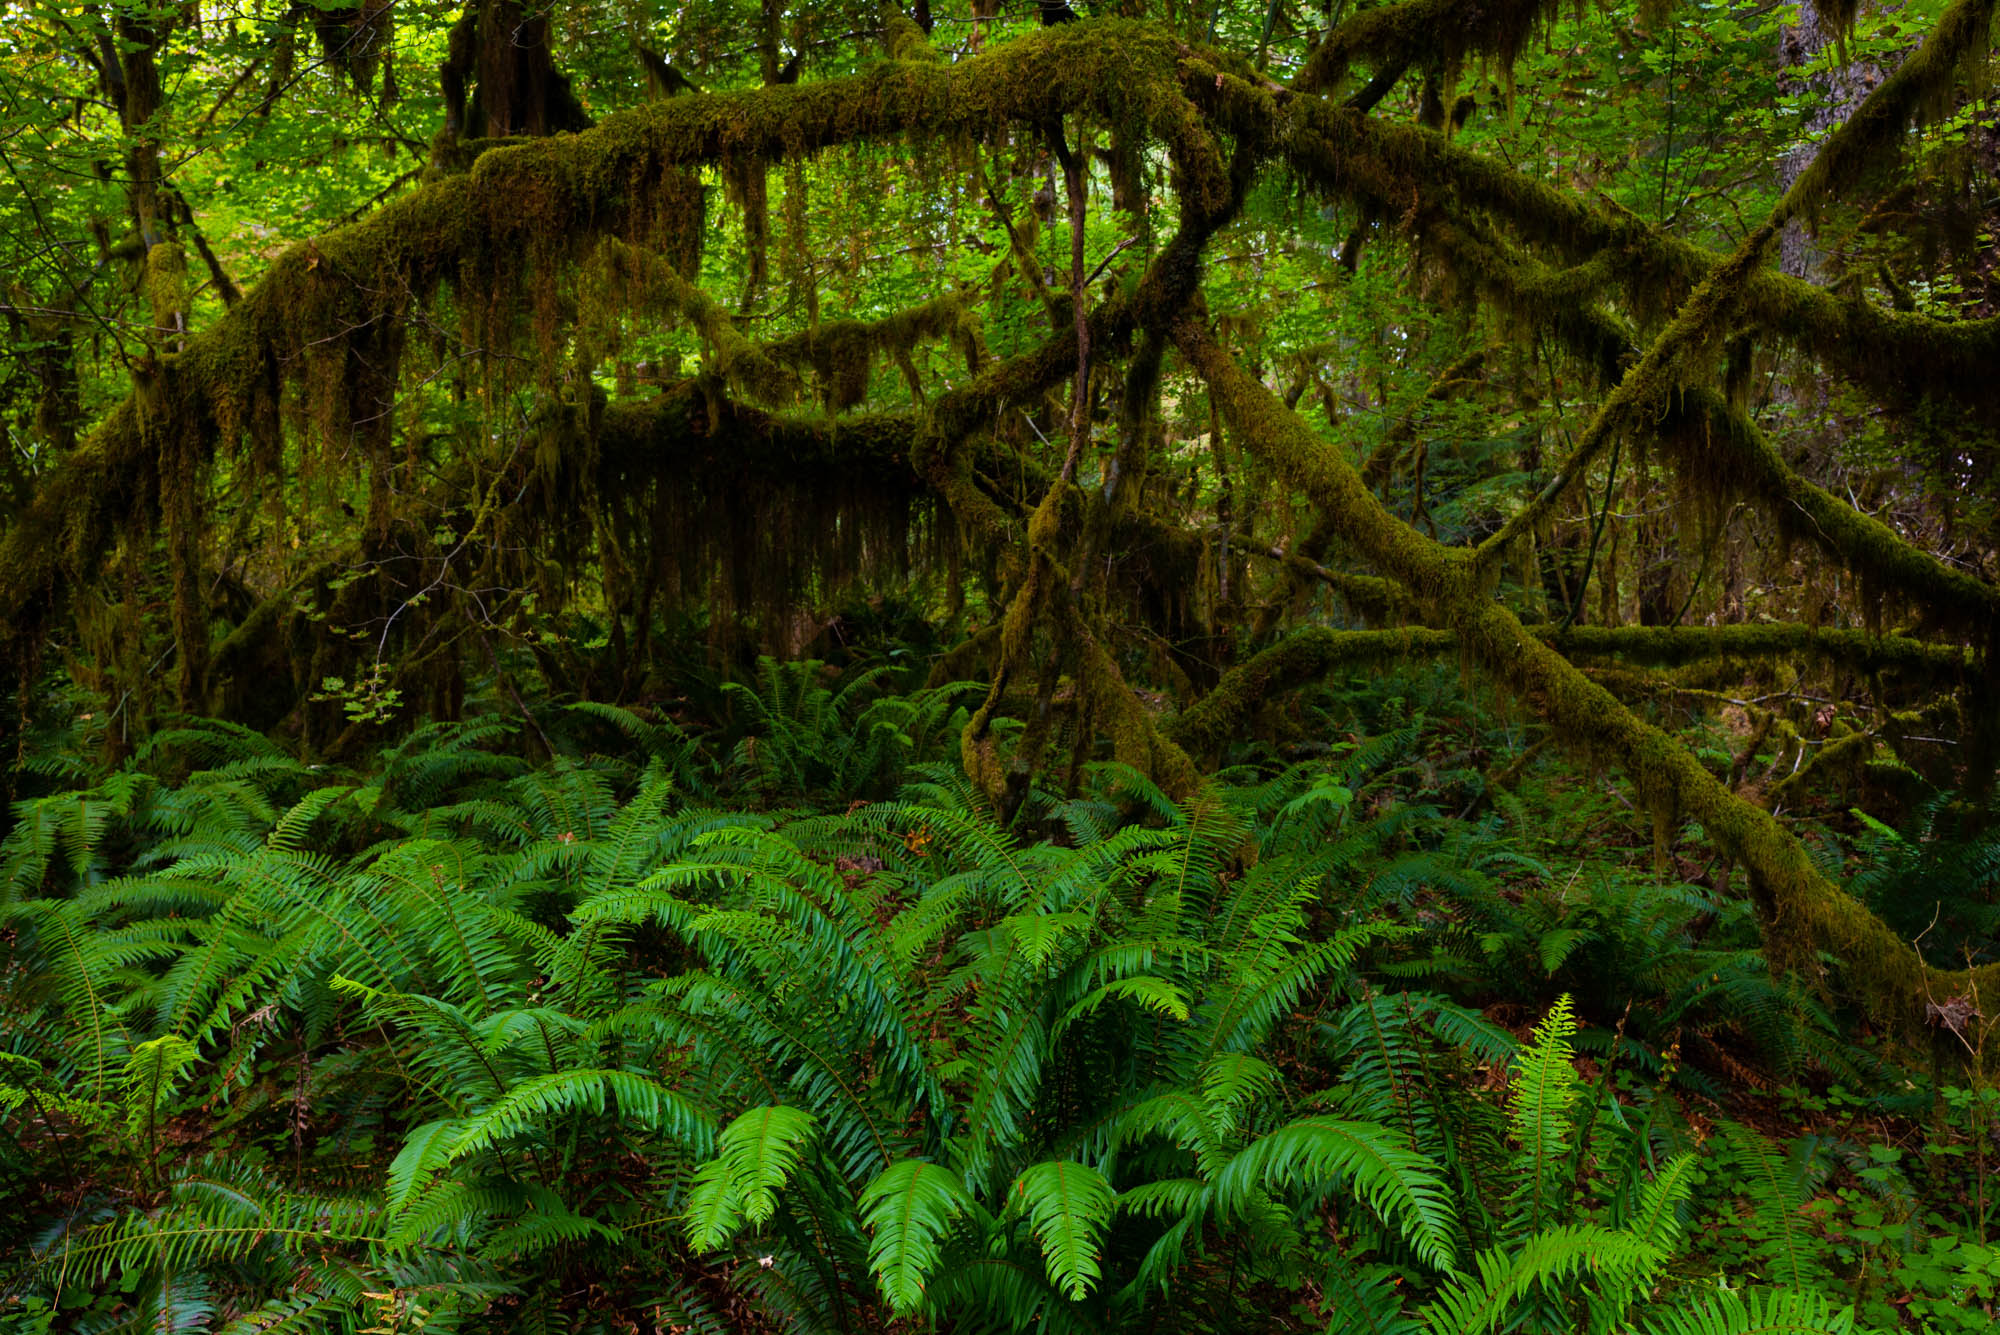 Bring the beauty of the Hoe Rainforest into your home with Jess Lee's limited edition fine art photography print from his Pacific...